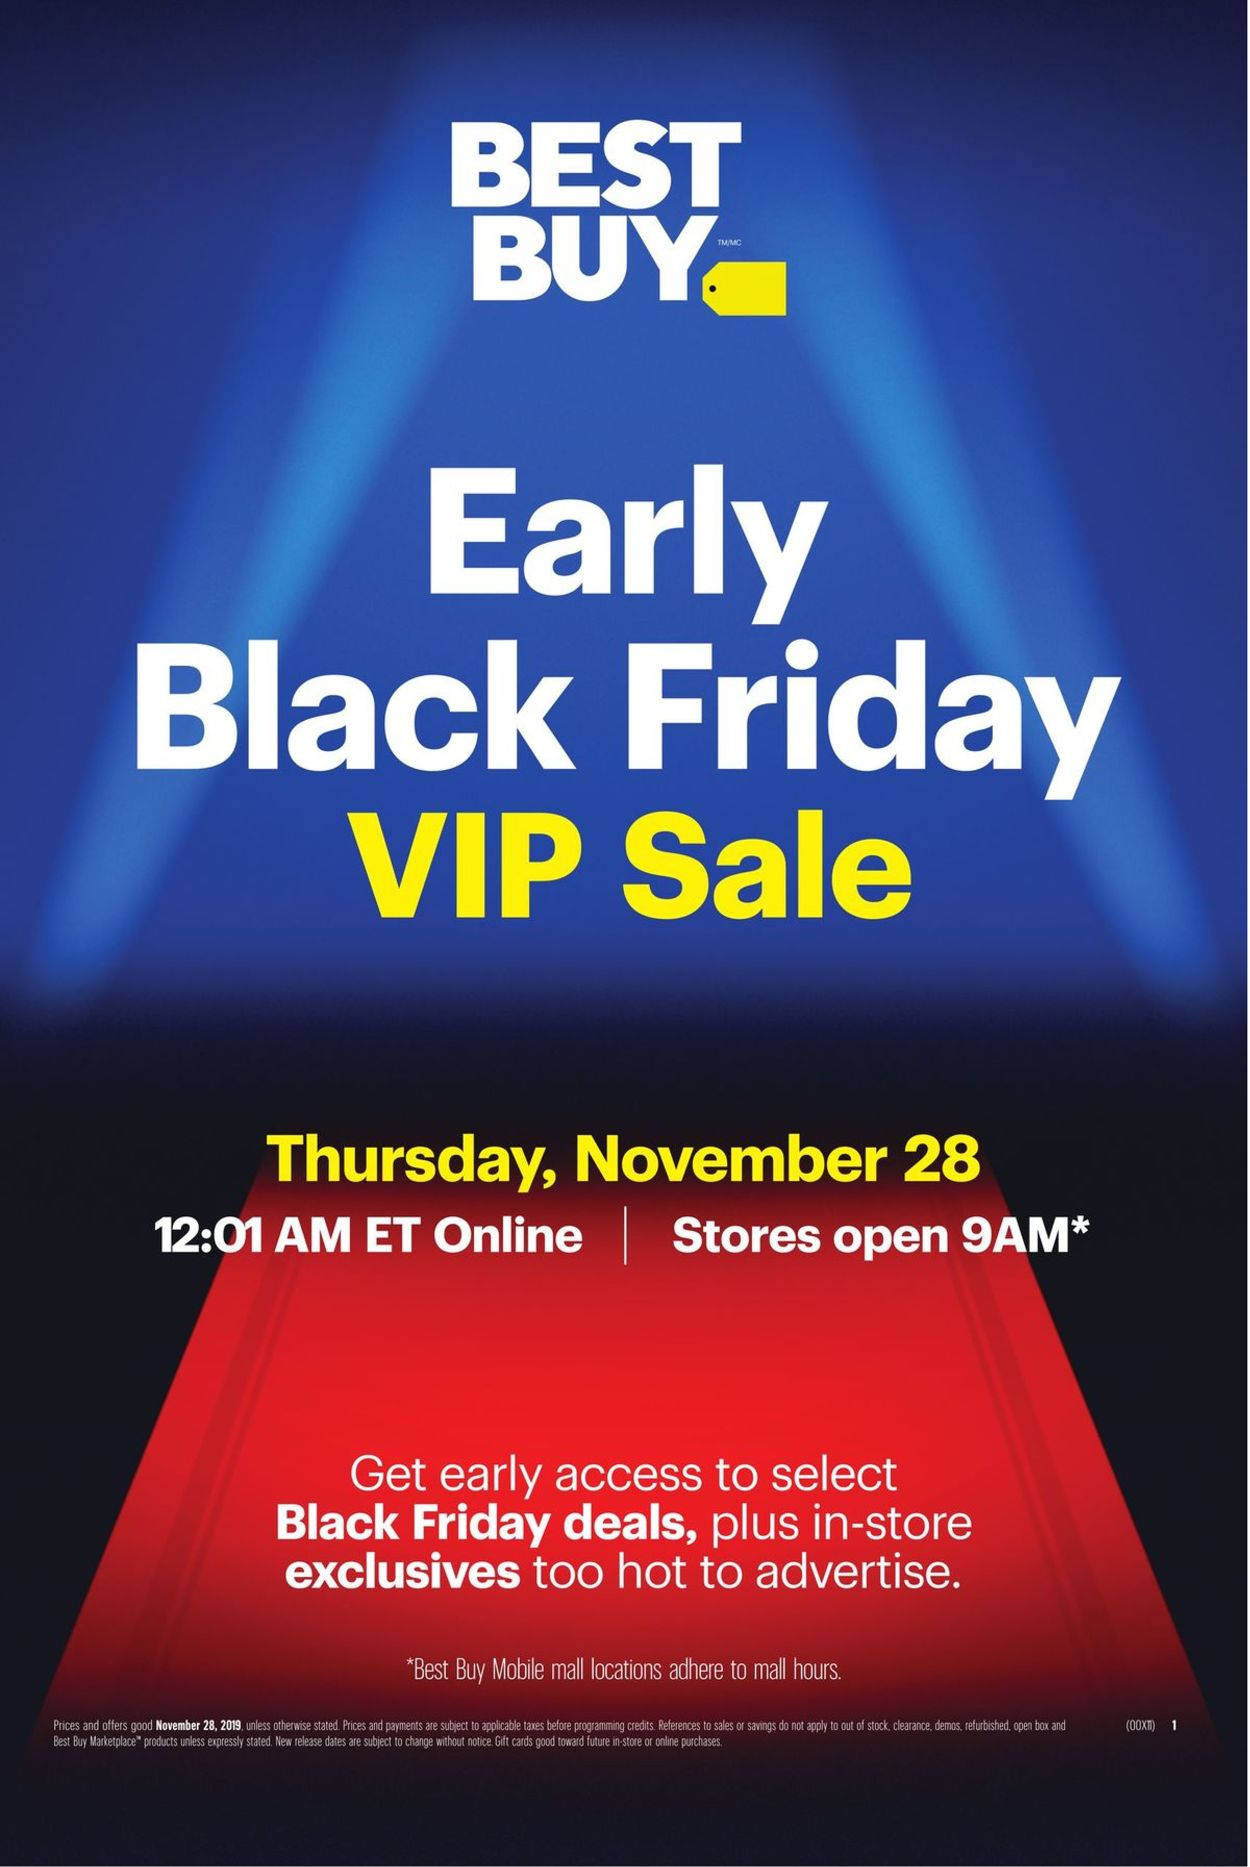 Best Buy - Early Black Friday Sale 2019